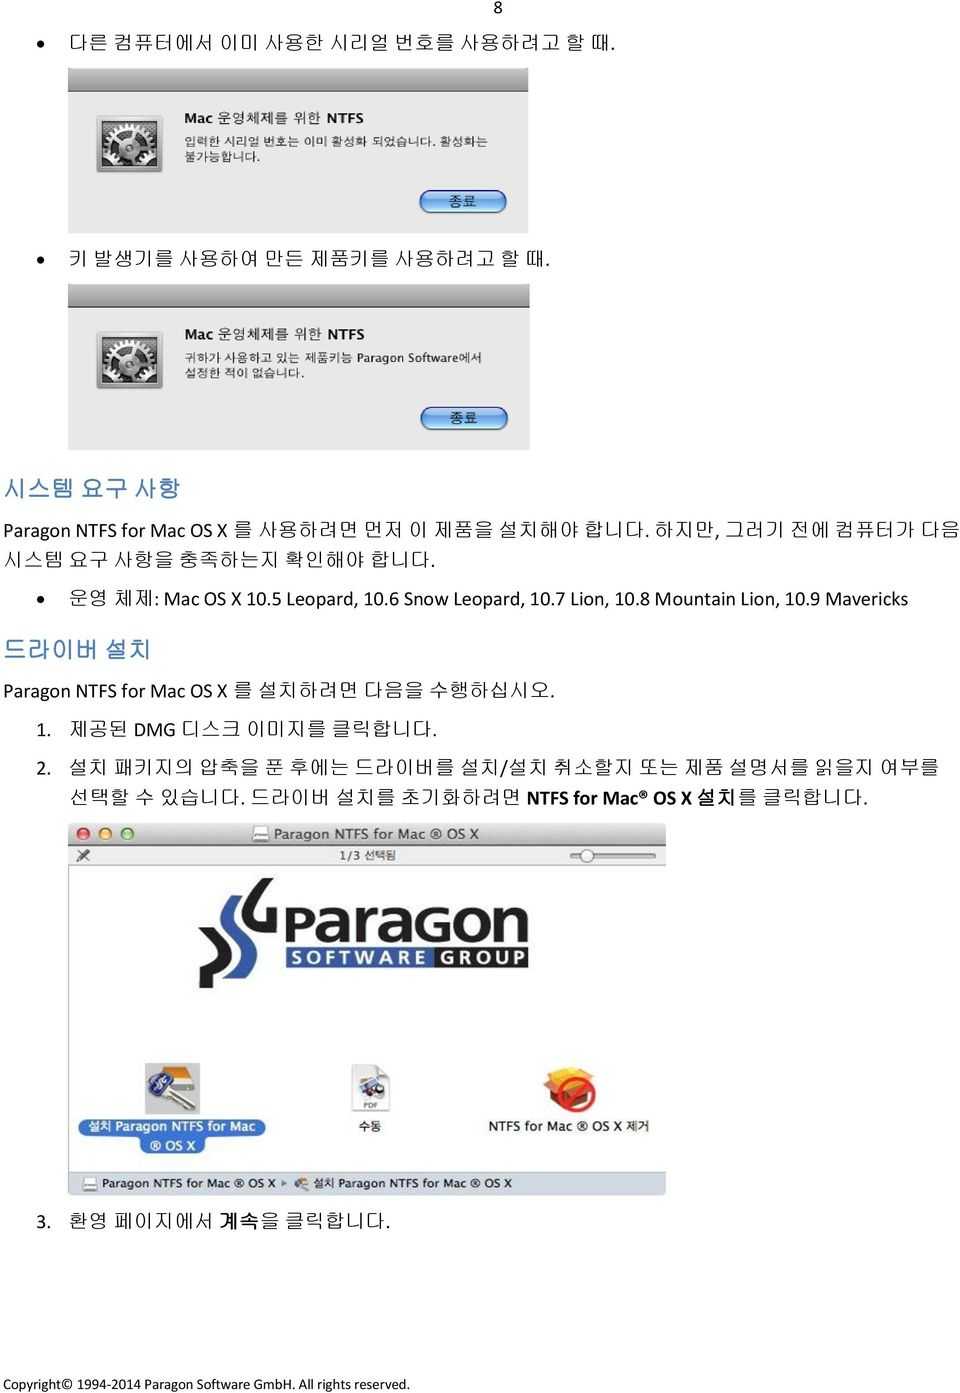 운영 체제: Mac OS X 10.5 Leopard, 10.6 Snow Leopard, 10.7 Lion, 10.8 Mountain Lion, 10.